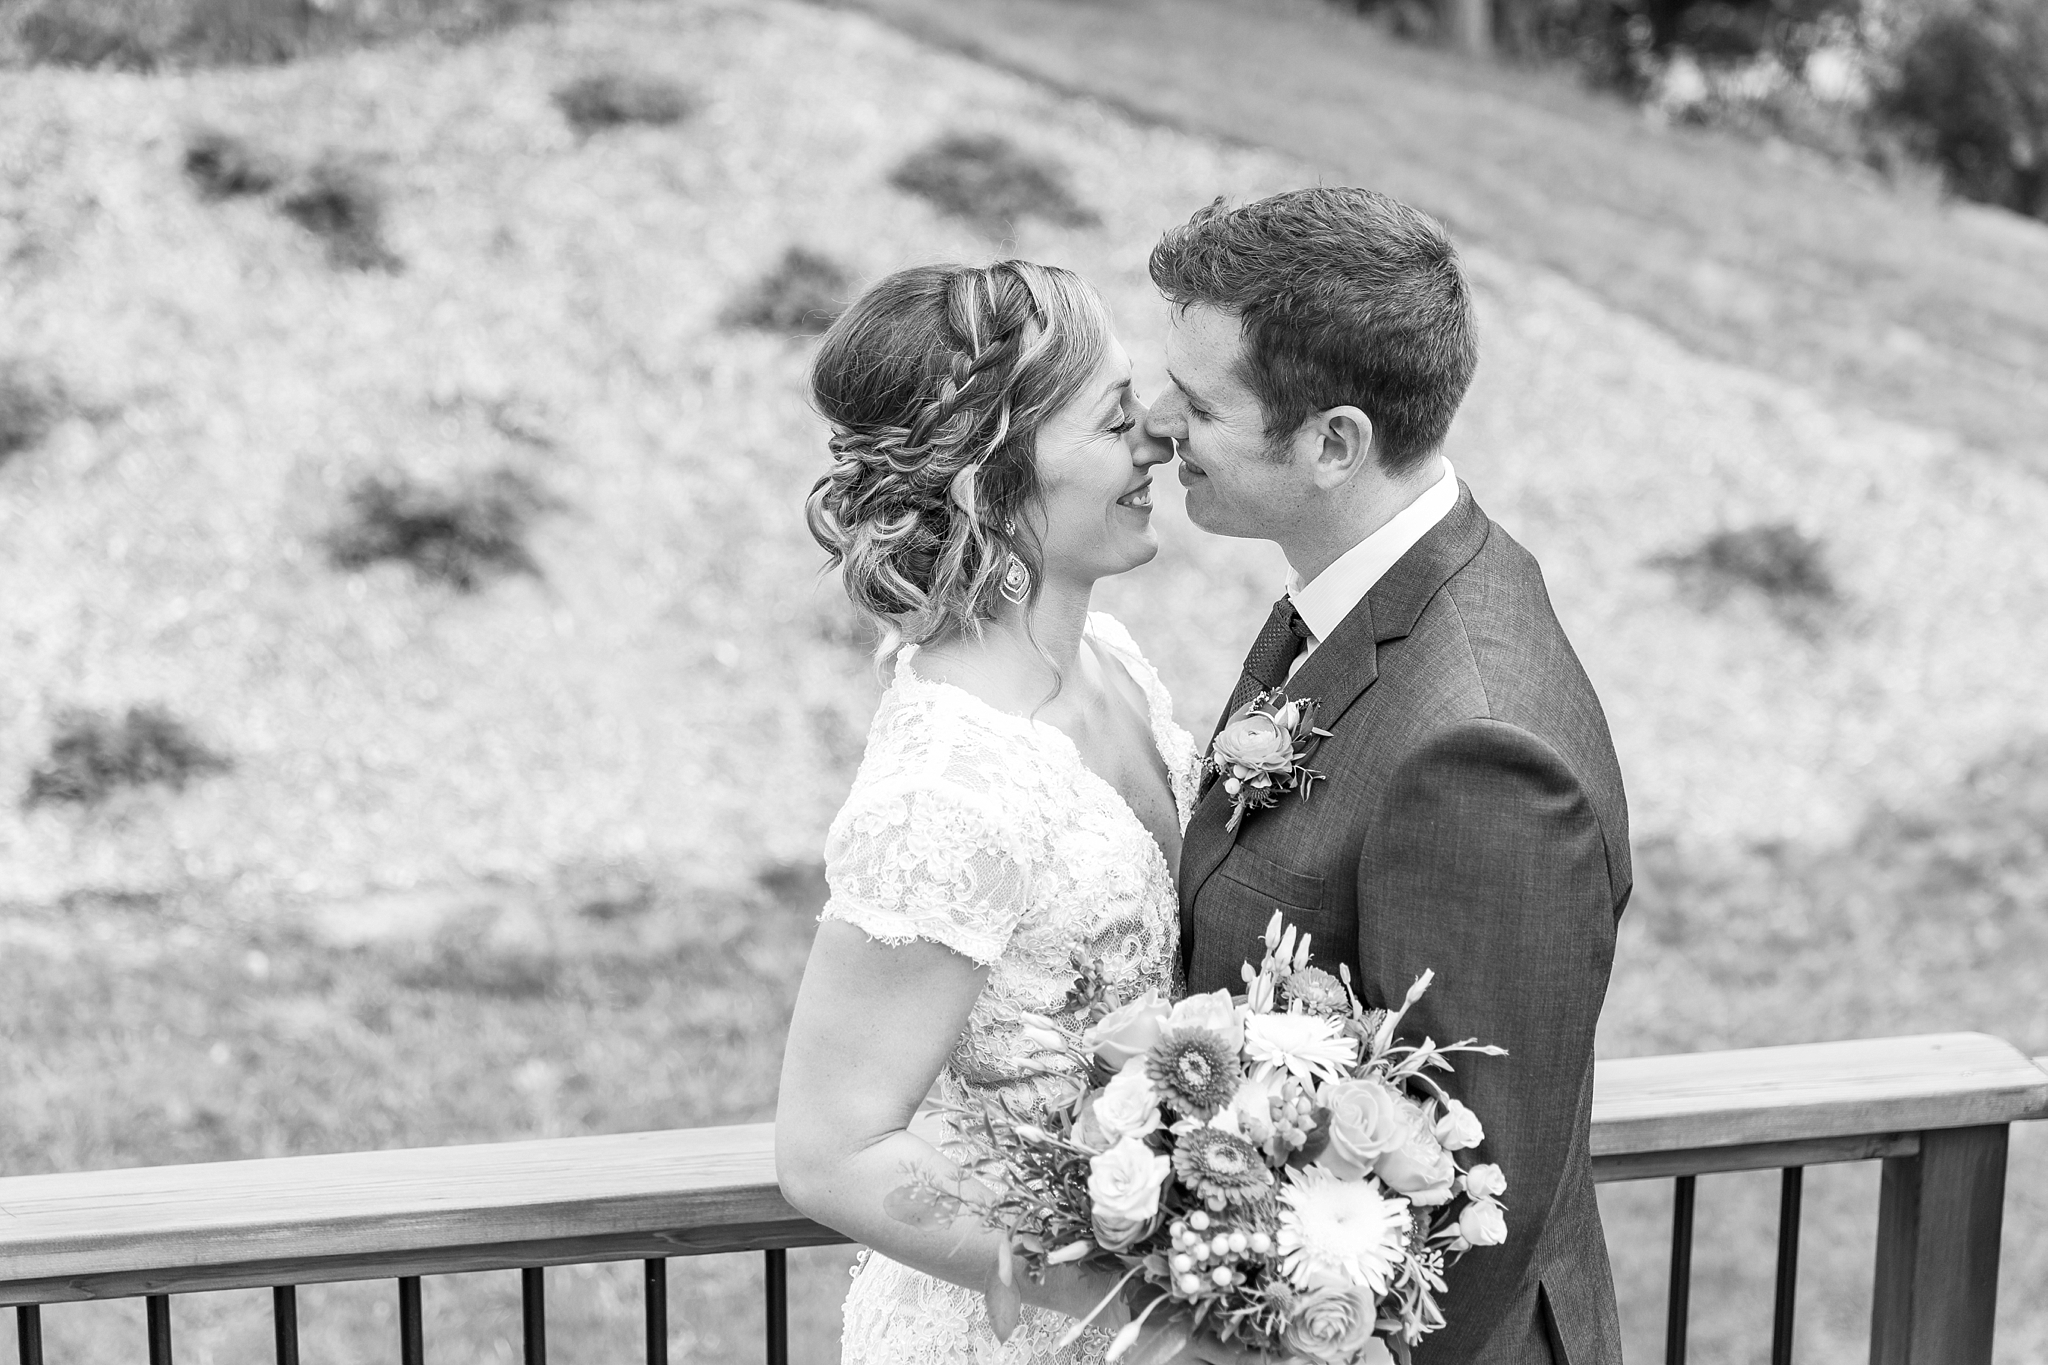 romantic-artful-candid-wedding-photos-in-detroit-lansing-ann-arbor-northern-michigan-and-chicago-by-courtney-carolyn-photography_0003.jpg